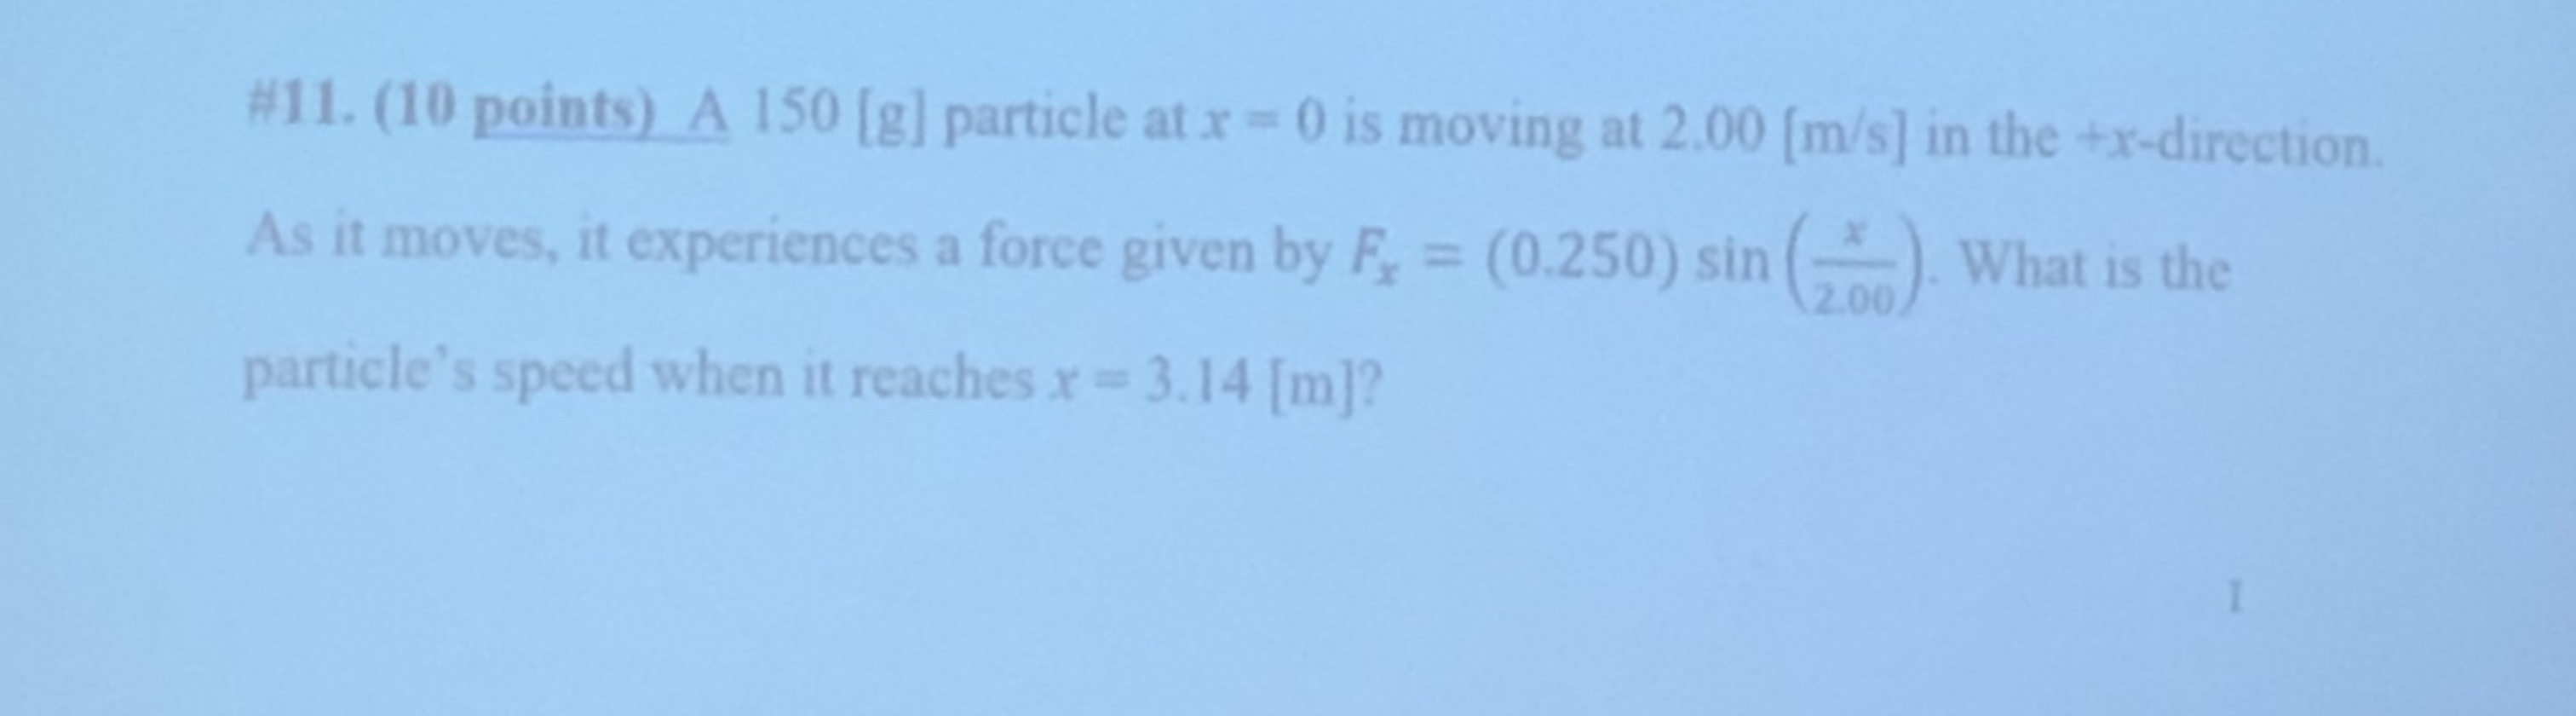 #11. (10 points) A 150 [g] particle at x 0 is moving at 2.00 [m/s] in the +x-direction As it moves, it experiences a force given by F (0.250) sin ( What is the 2.00 particle's speed when it reaches r= 3.14 [m]?